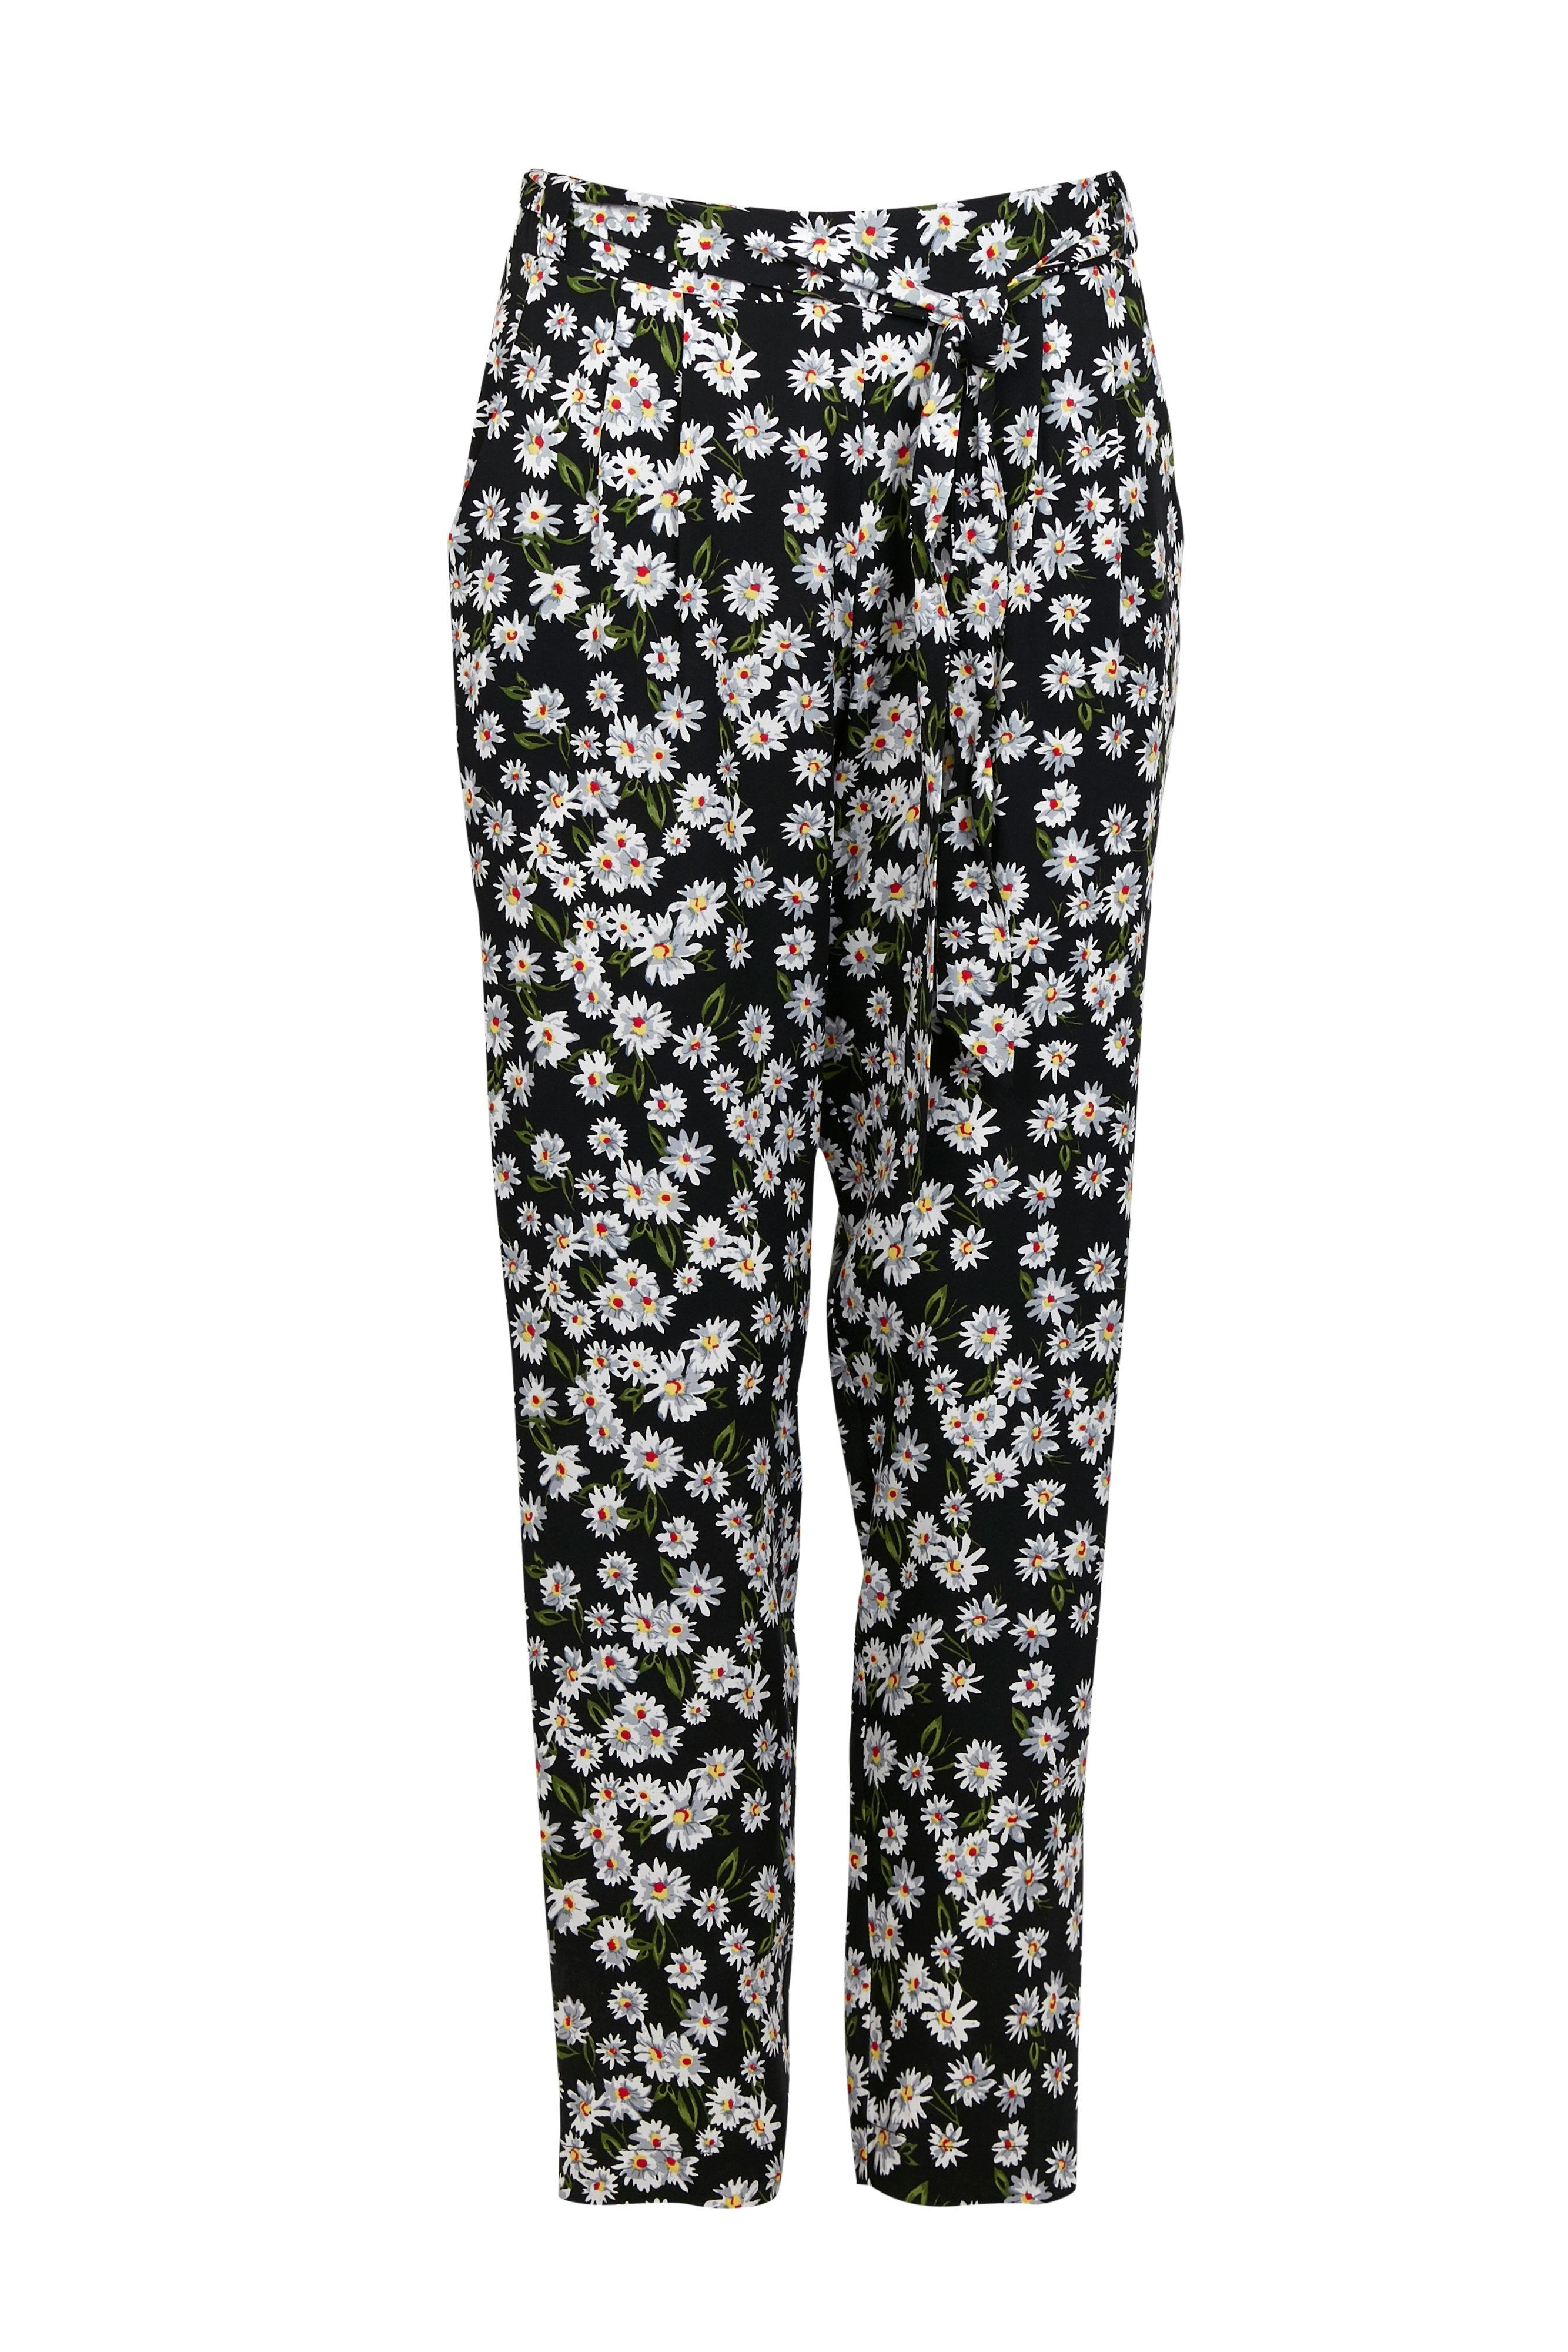 buy sale shop best sellers special section Wallis Synthetic Petite Black Daisy Printed Trouser - Lyst